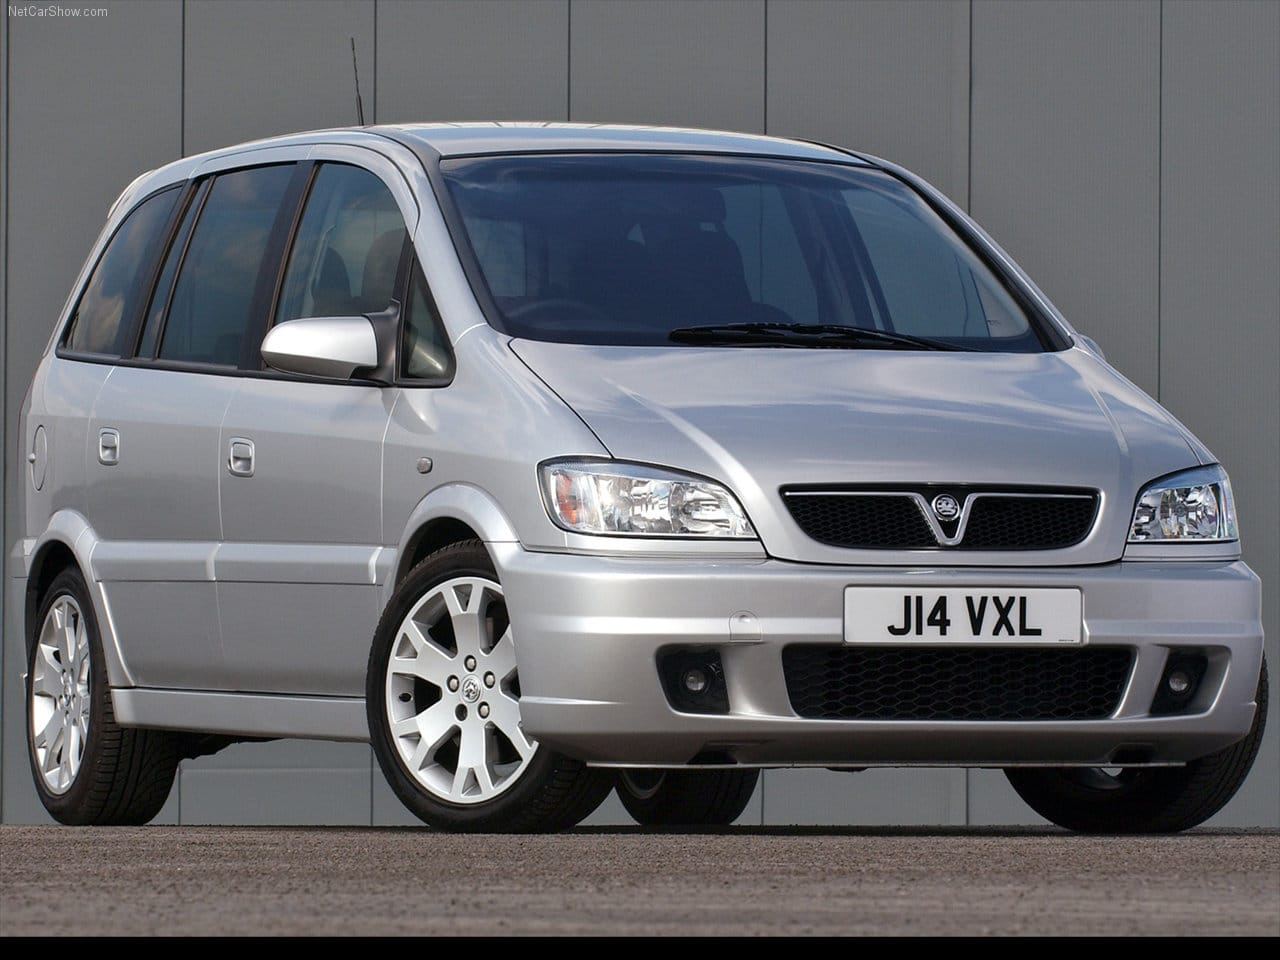 Vauxhall Zafira GSi, Vauxhall Zafira, Vauxhall, Zafira, Zafira GSi, GSi, people carrier, family car, motoring, automotive, car, cars, retor car classic car, autotrader, ebay motors, car for sale, cheap cars, car design, fun car, fast car, hot hatch